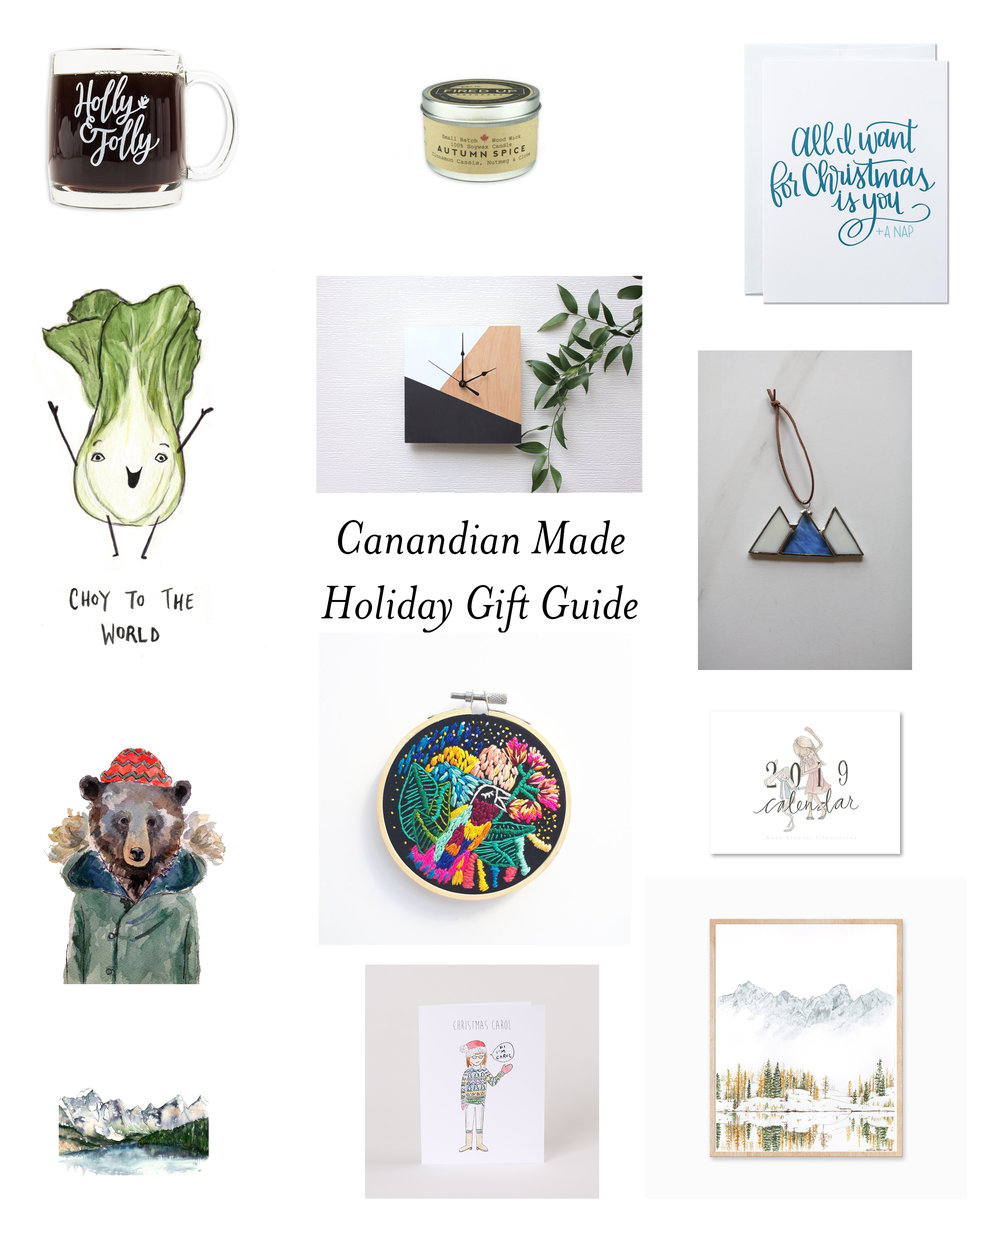 handcrafted canadian made holiday gift guide.jpg